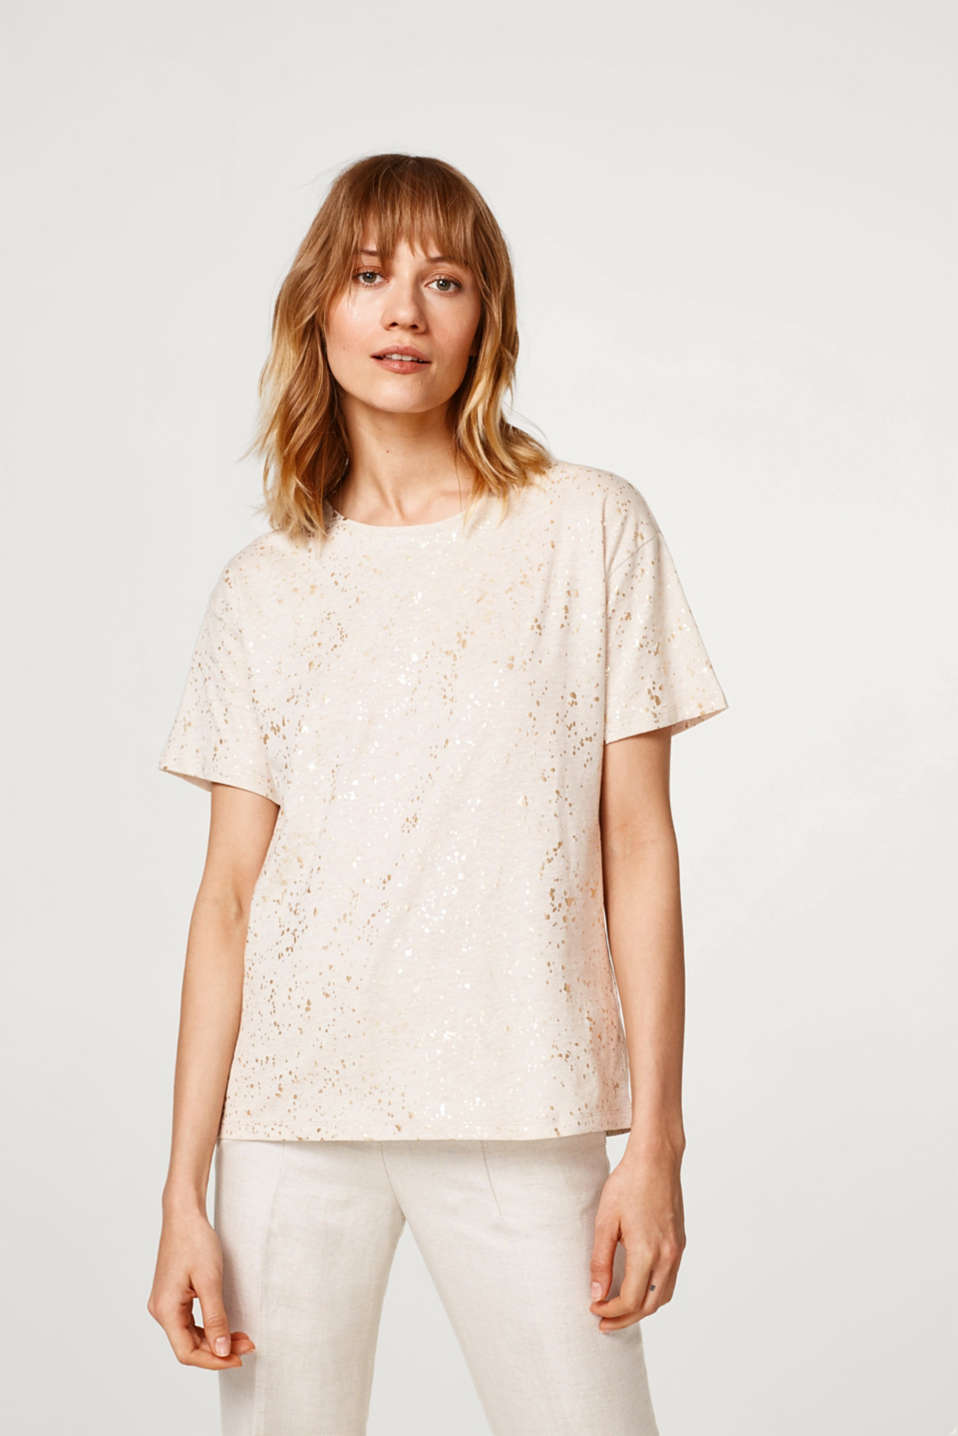 Esprit - Melange top with shiny speckles, 100% cotton